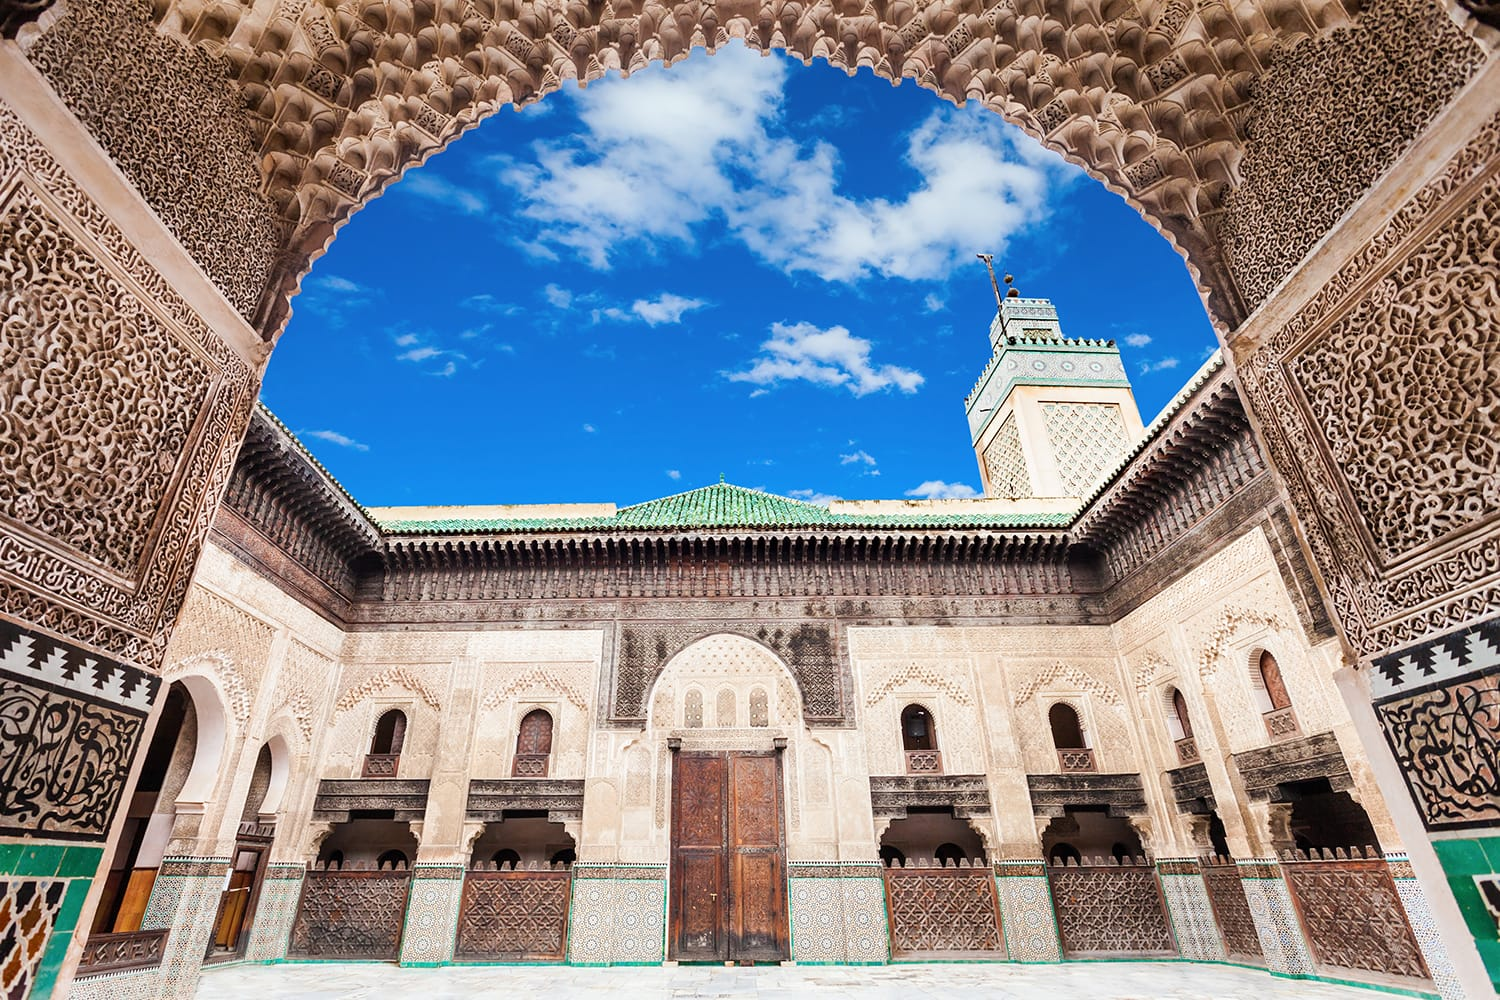 The Medersa Bou Inania is a madrasa in Fes, Morocco